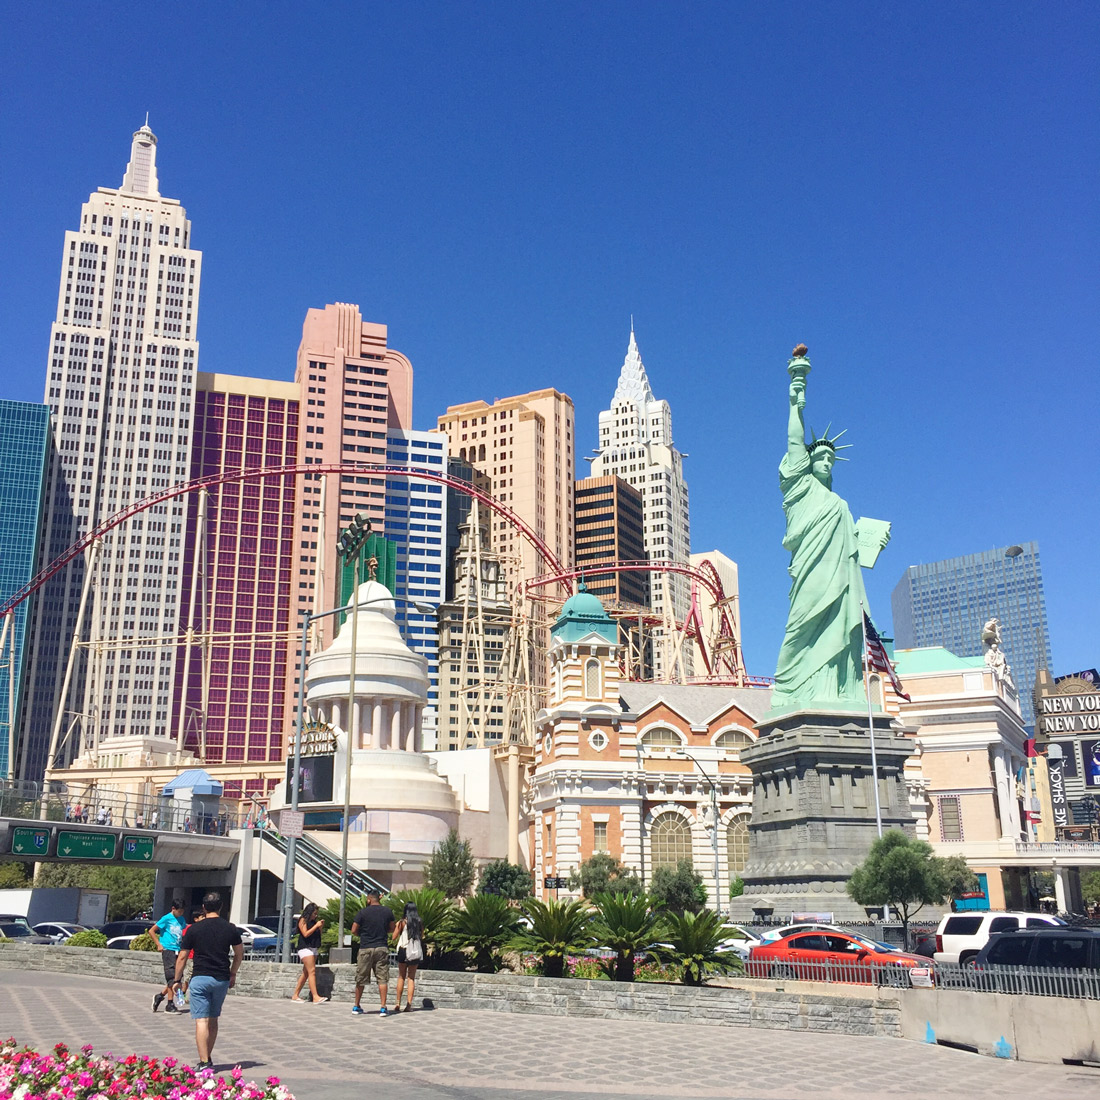 bag-at-you-travel-blog-las-vegas-new-york-hotel